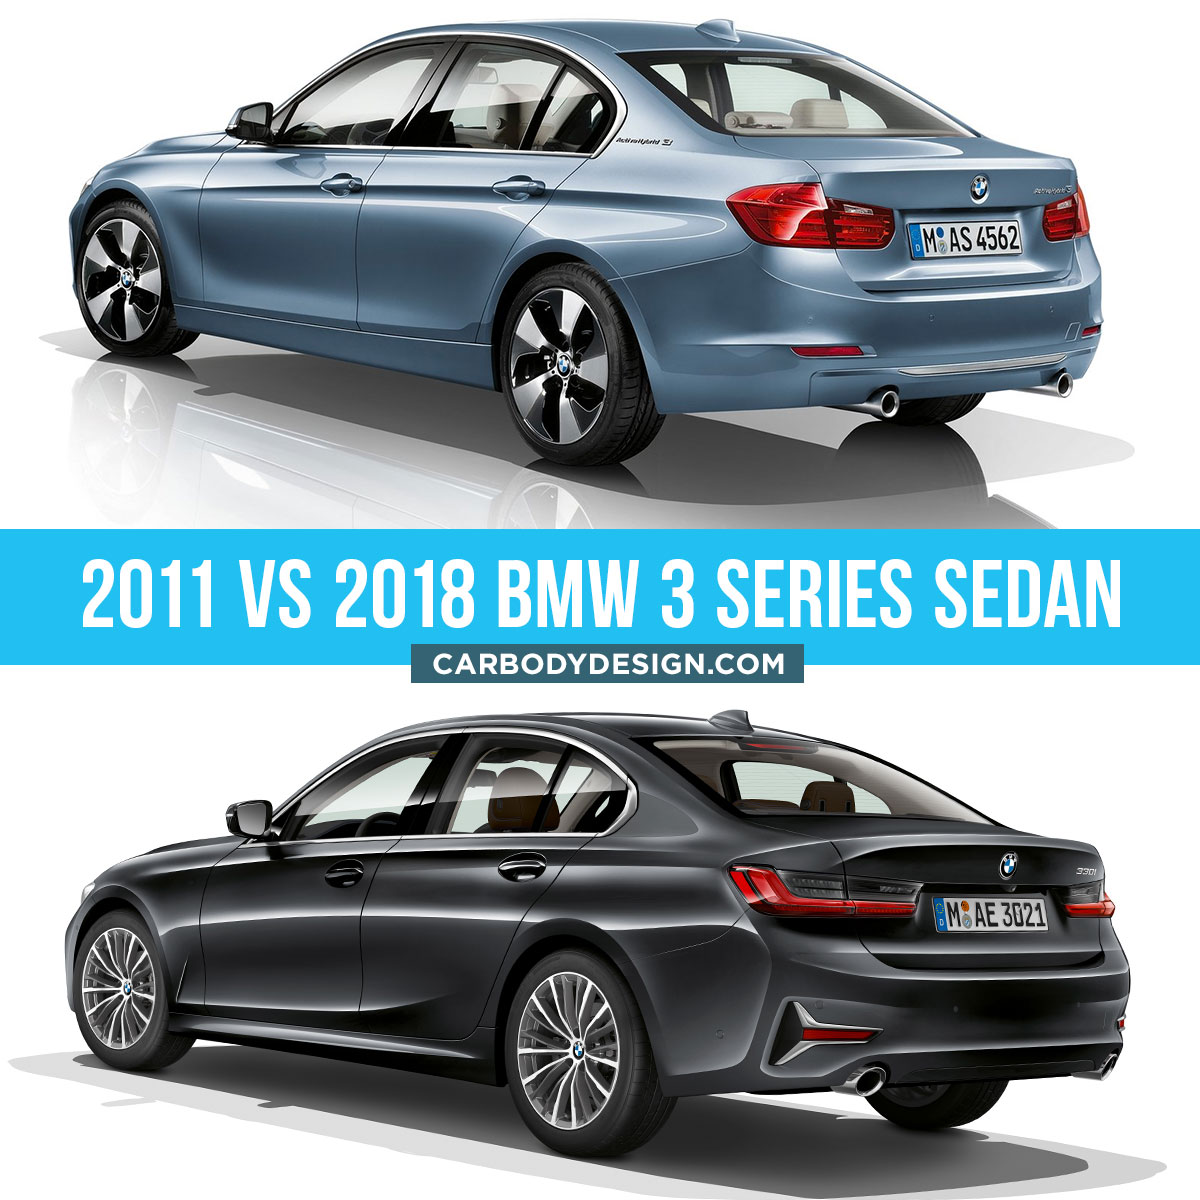 2011 vs 2018 BMW 3 Series Sedan design Comparison